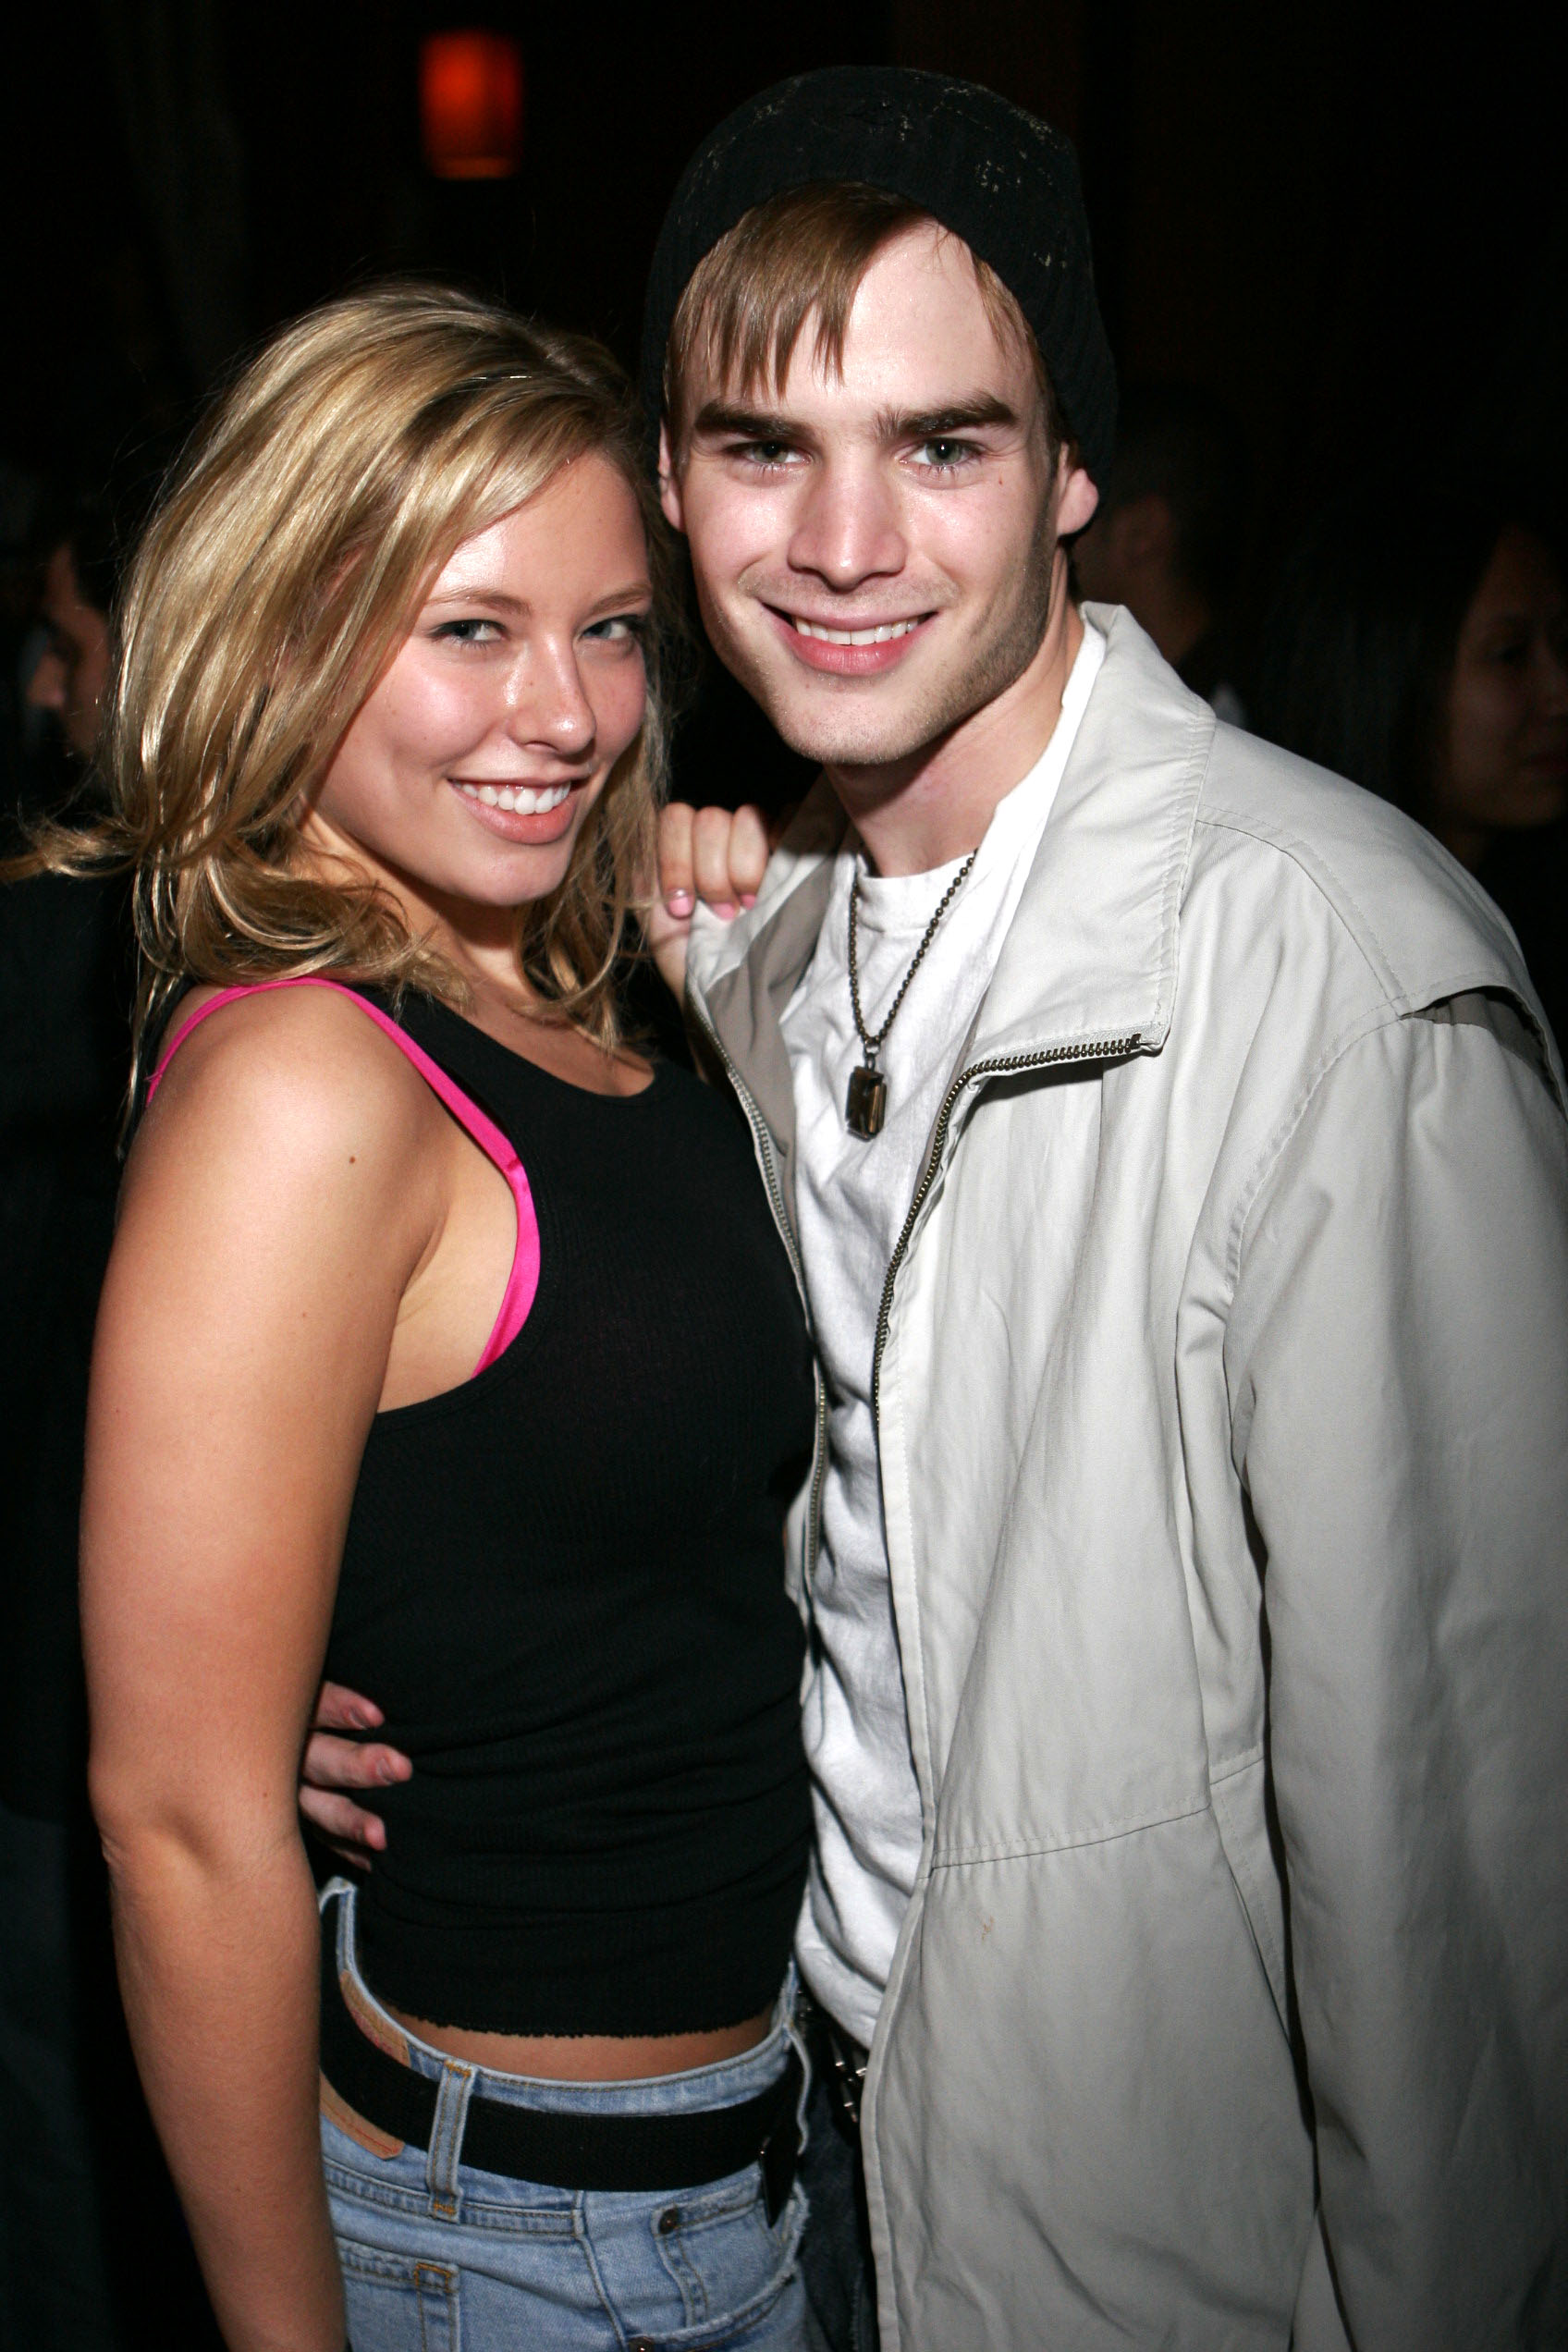 Former boyfriend and girlfriend: David Gallagher and Jillian Grace